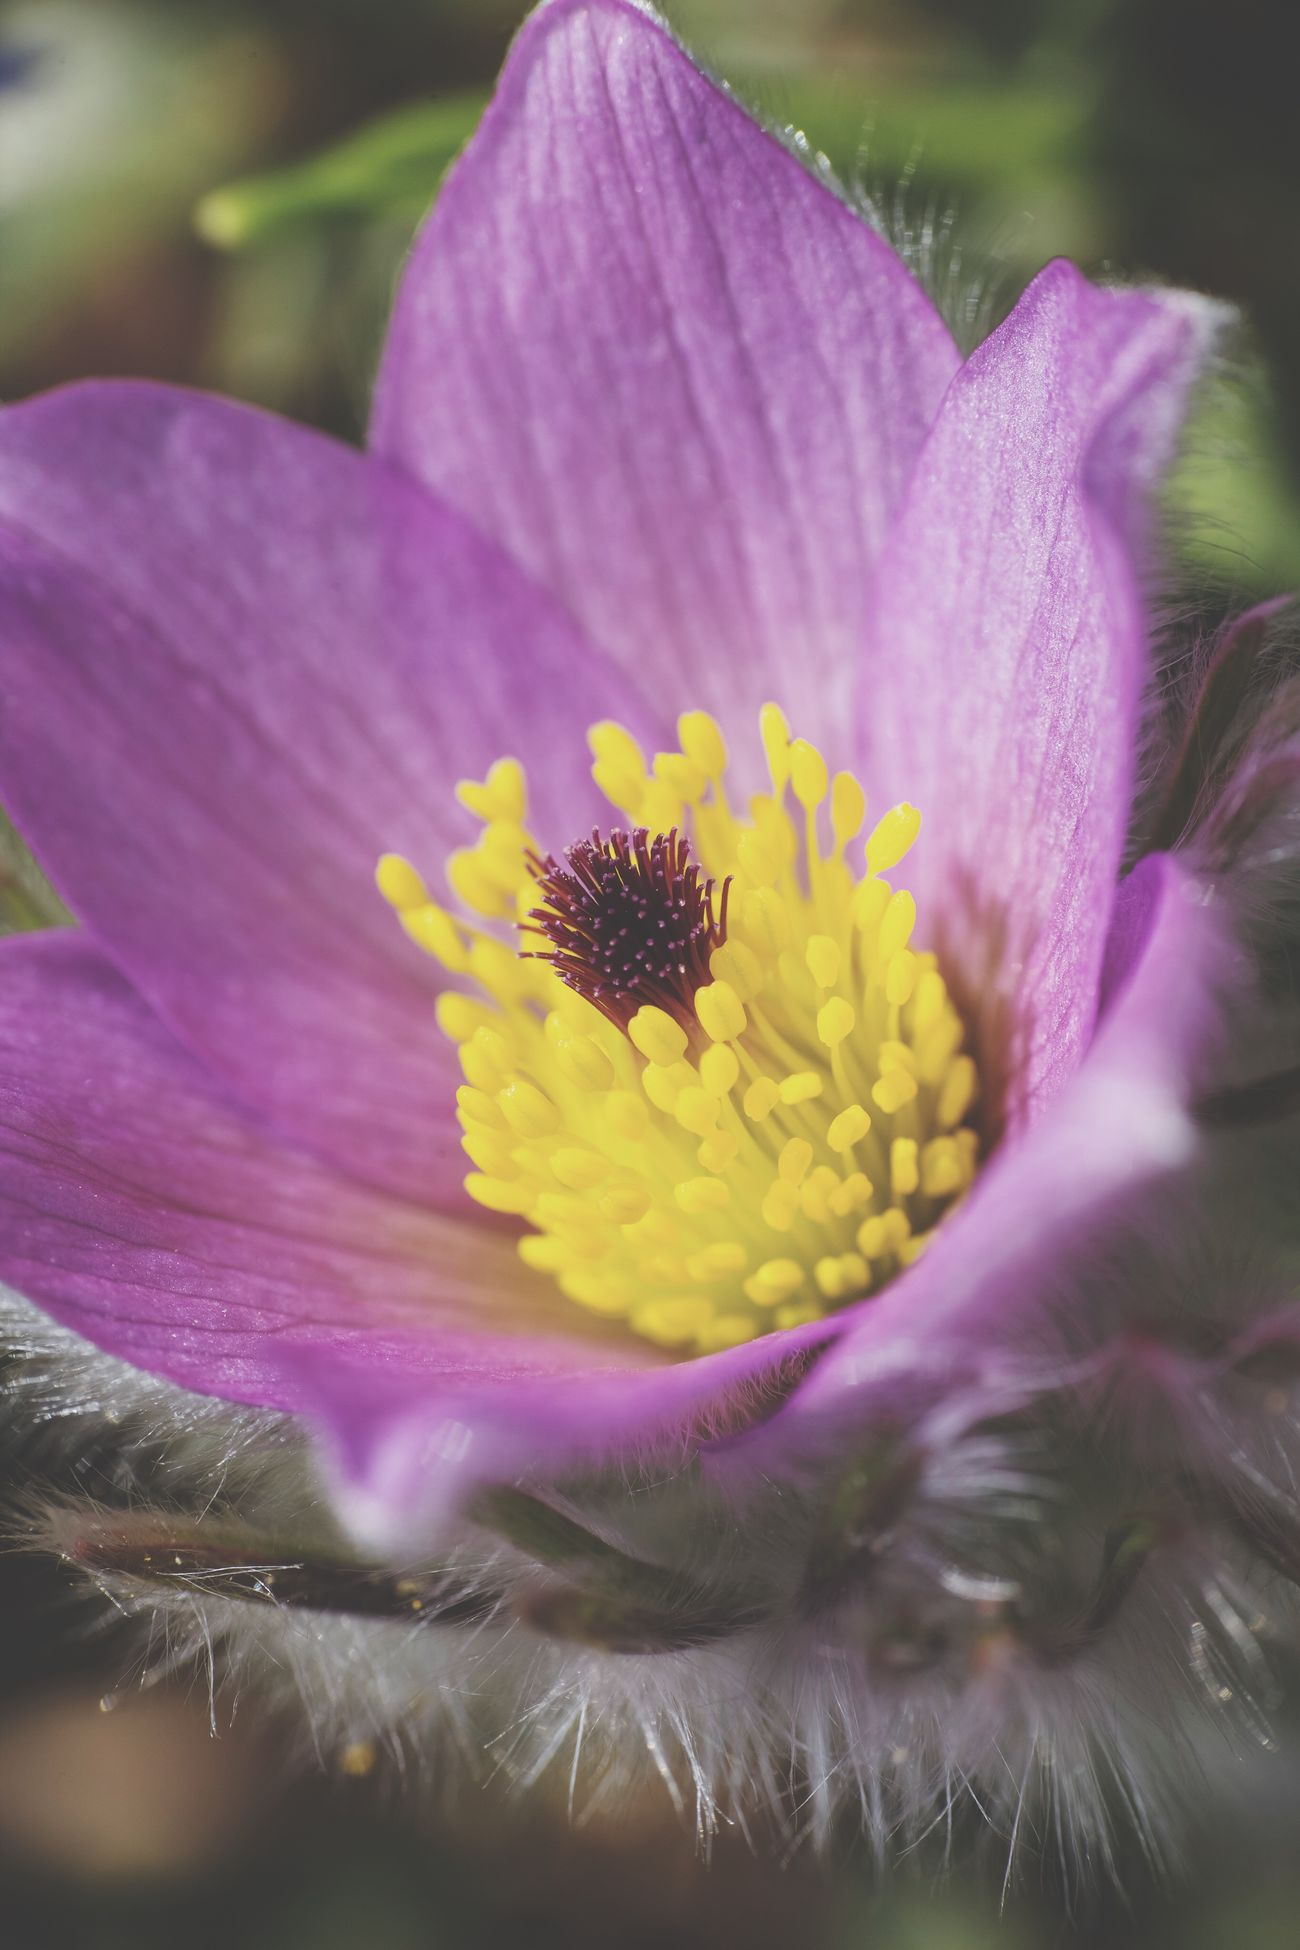 ©338 Pulsatilla Flower Flower Head Pollen Pink Color Close-up Blooming EyeEm Best Shots Germany Pollination Spring Springtime Spring Flowers I LOVE PHOTOGRAPHY Simple Quiet Love Taking Photos EyeEm Gallery Showcase March Flowers,Plants & Garden Fineart Macro EyeEm Macro Extreme Close-up Millennial Pink Flowerporn My Unique Style